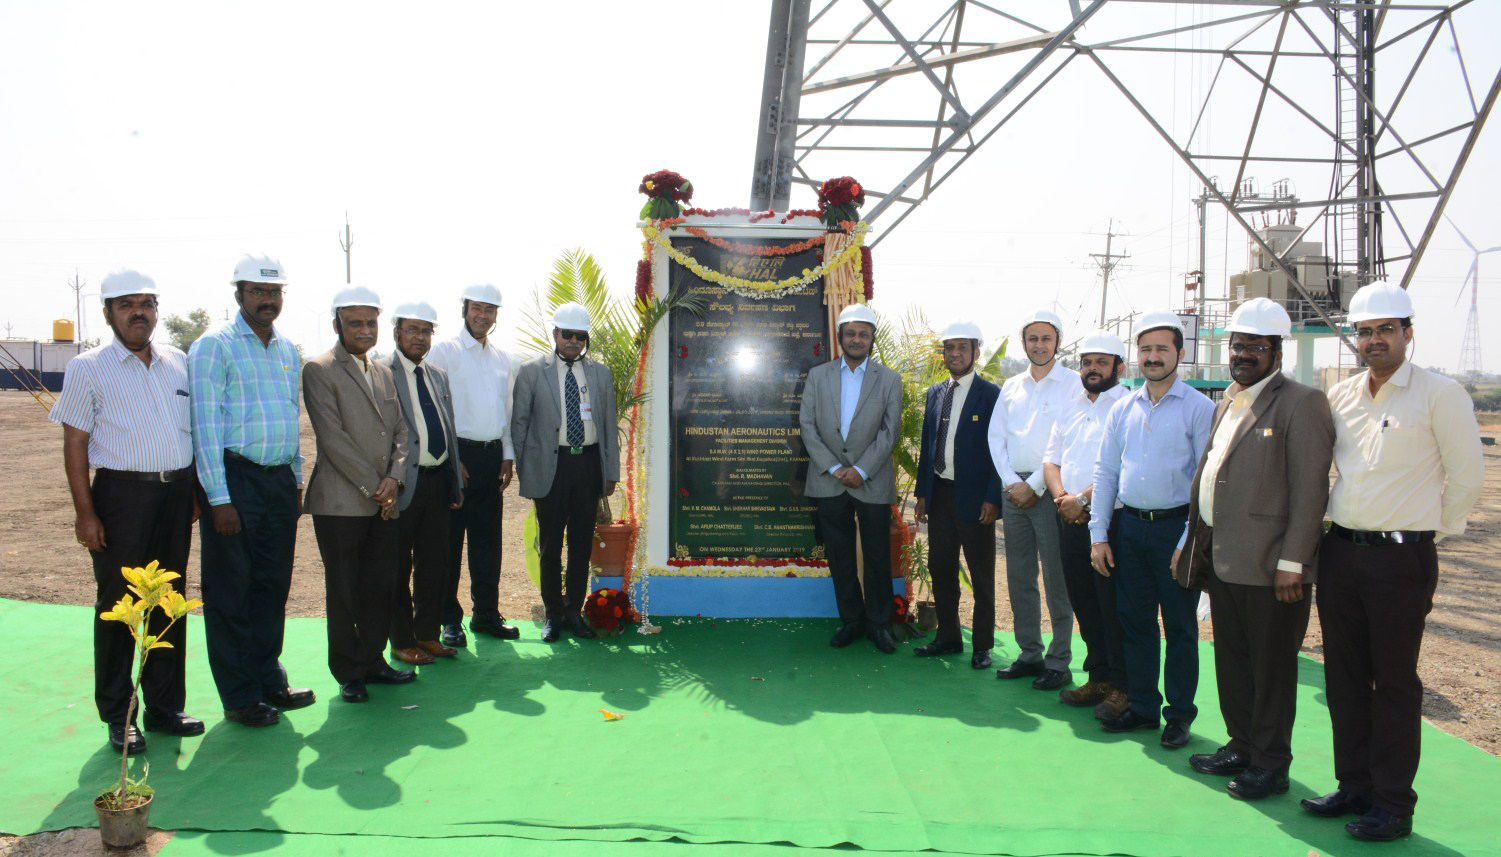 Suzlon strengthens leadership in the PSU segment; commissions second wind project for HAL